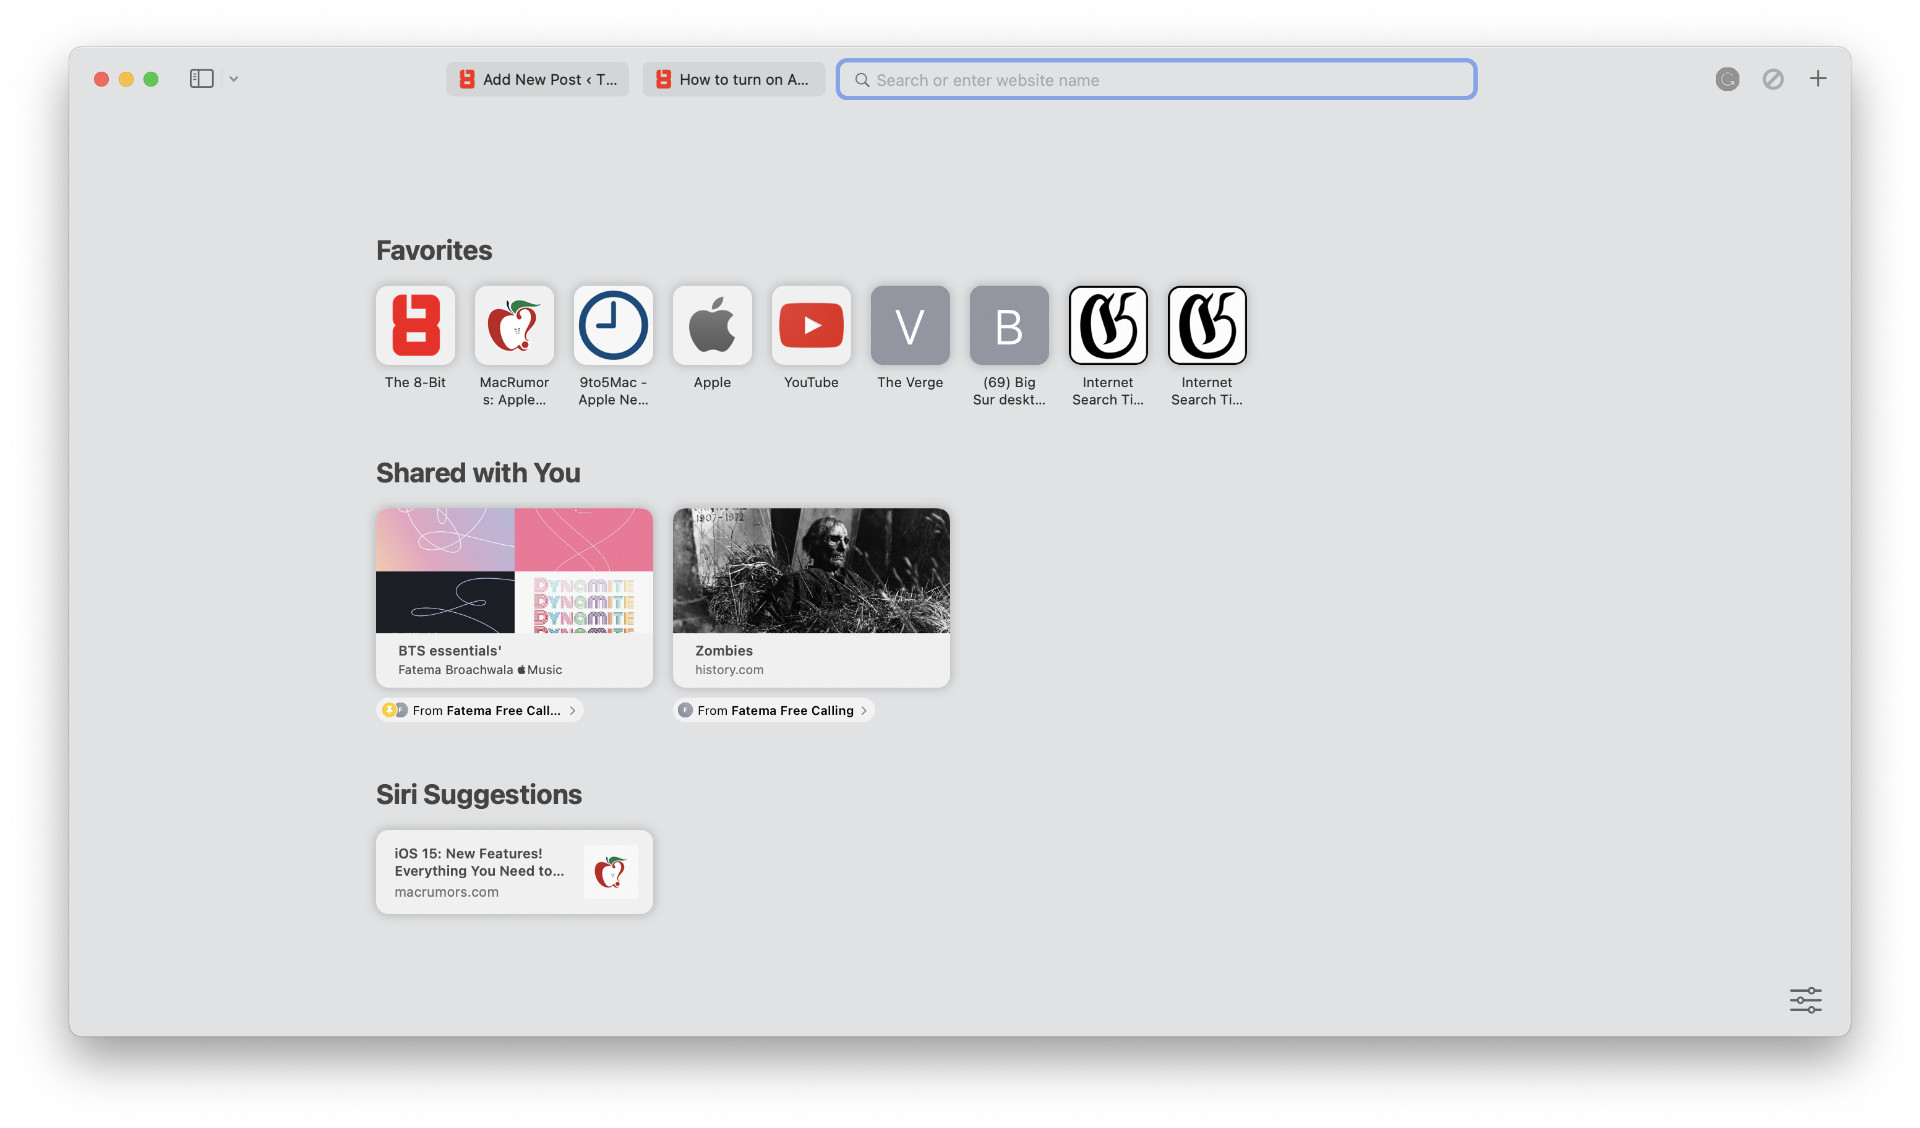 Shared With You section in Safari on macOS Monterey.